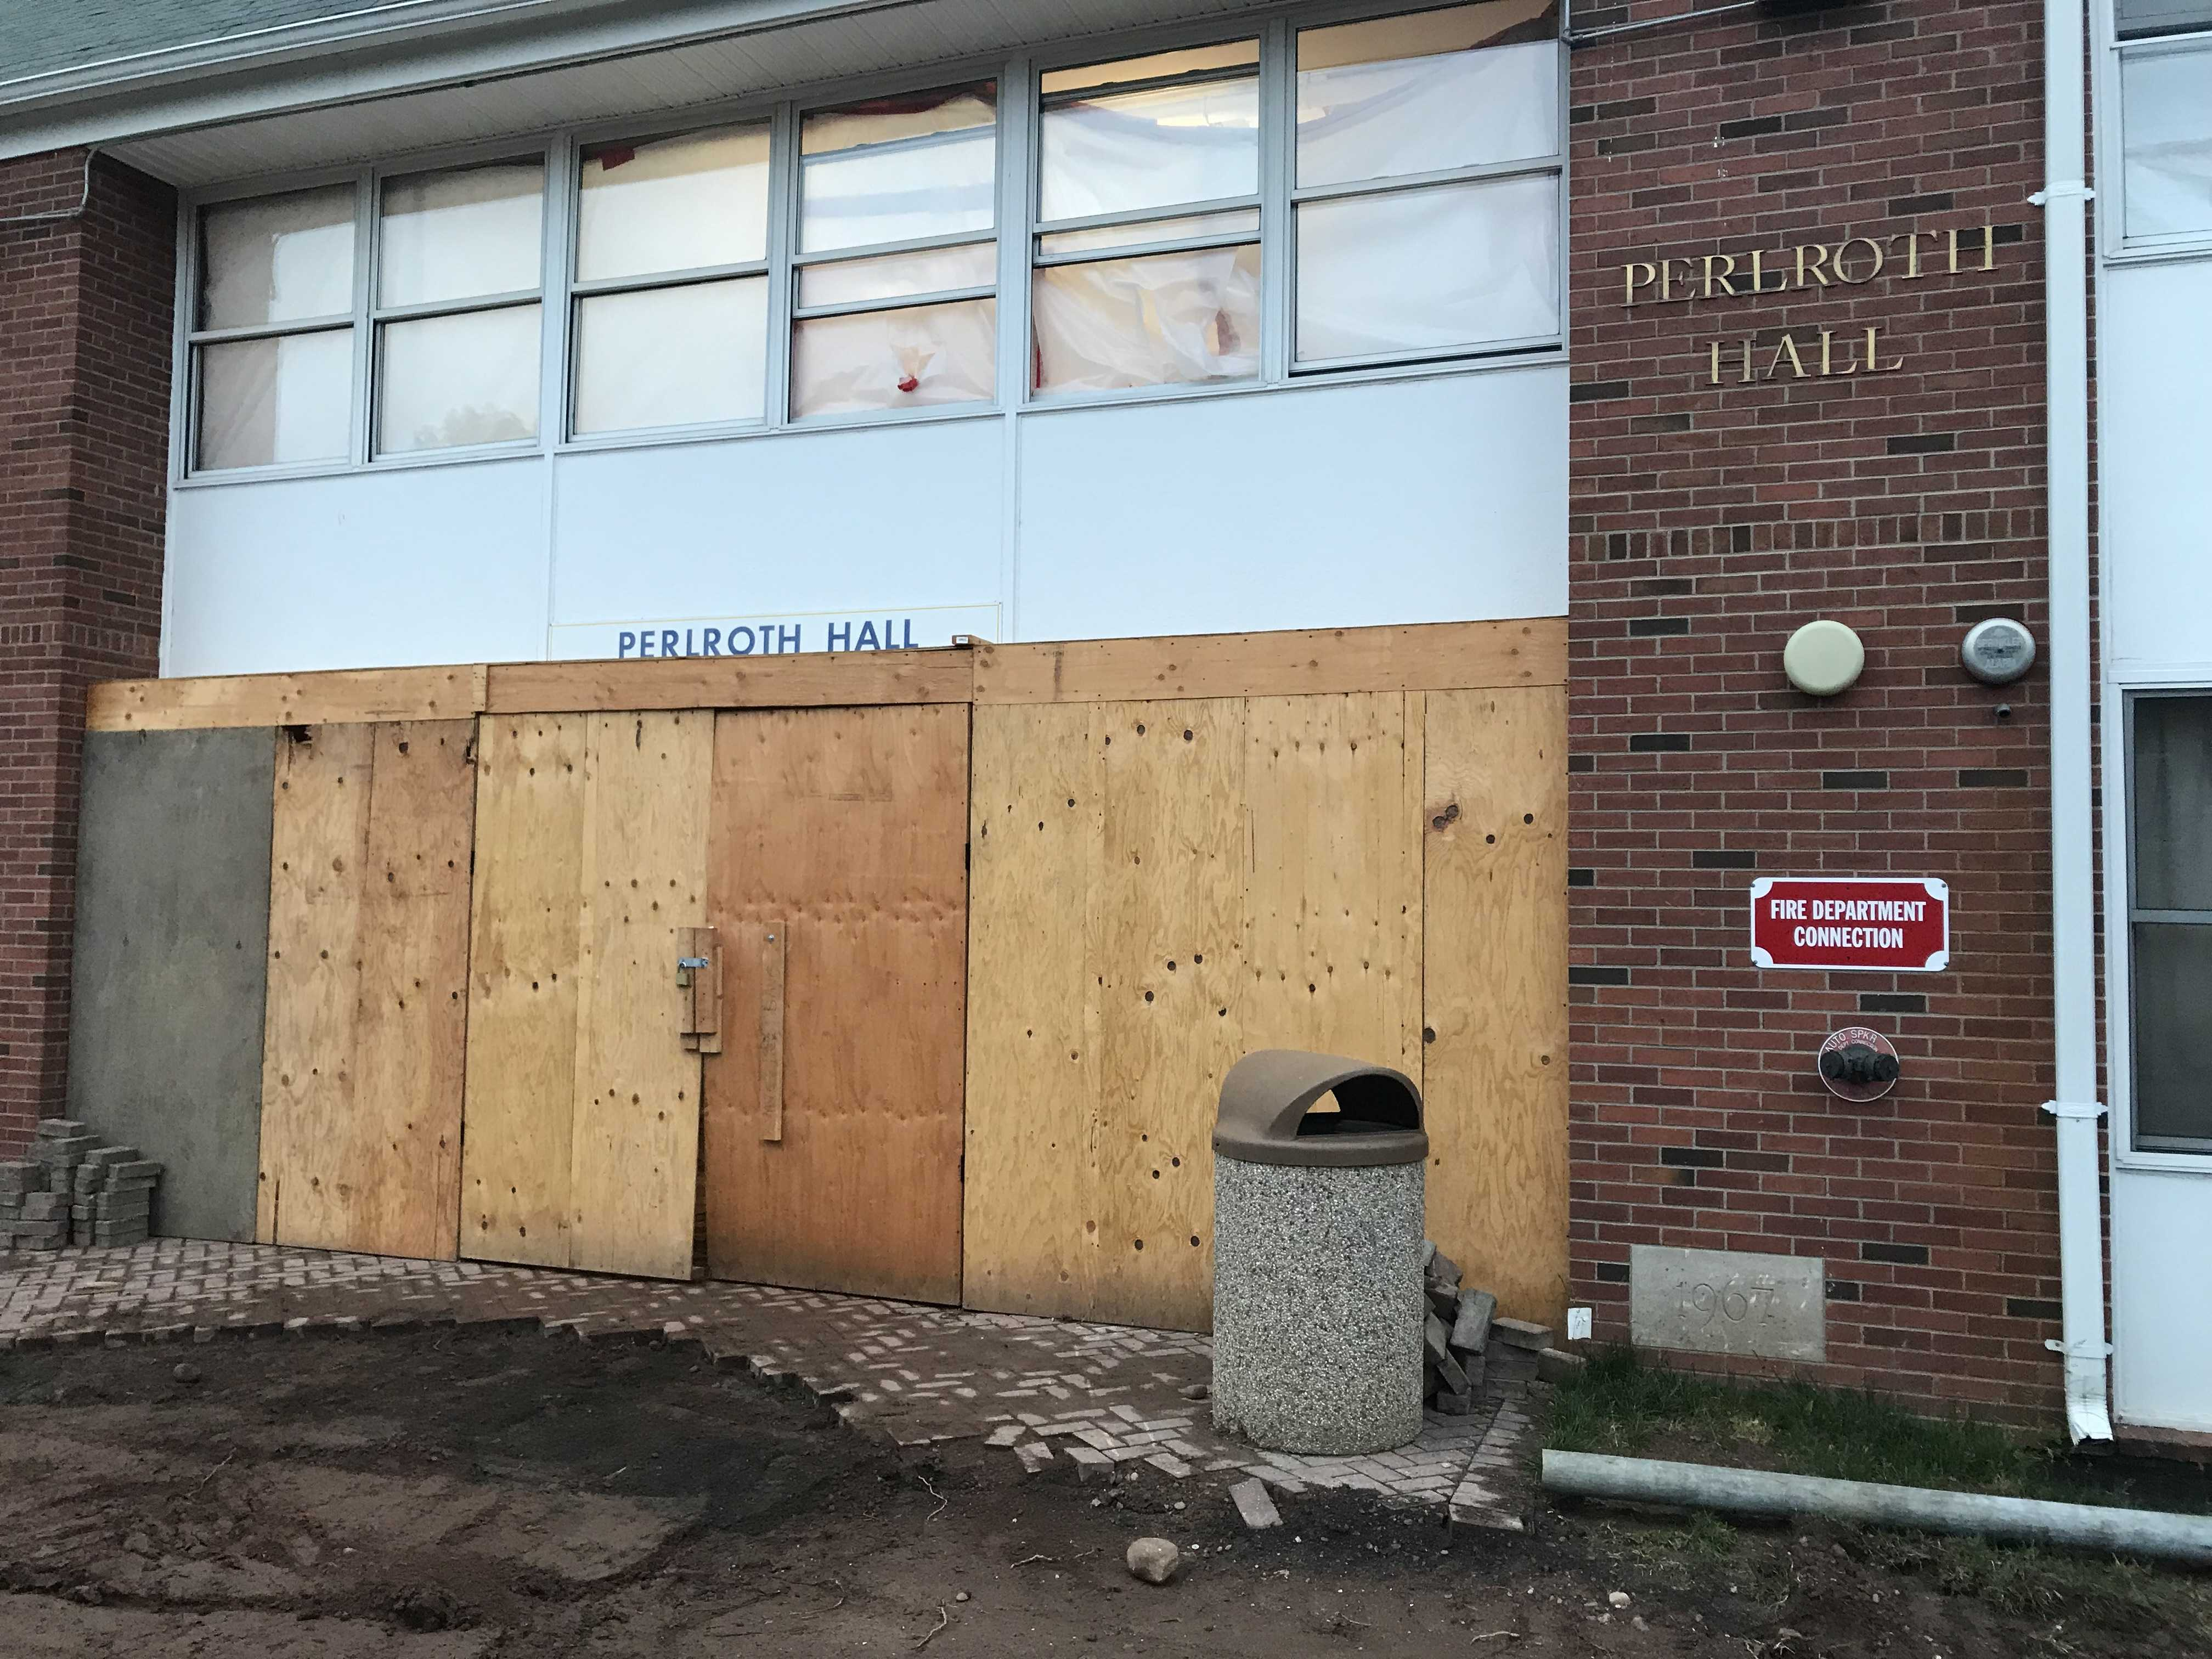 Residence halls to be closed due to asbestos